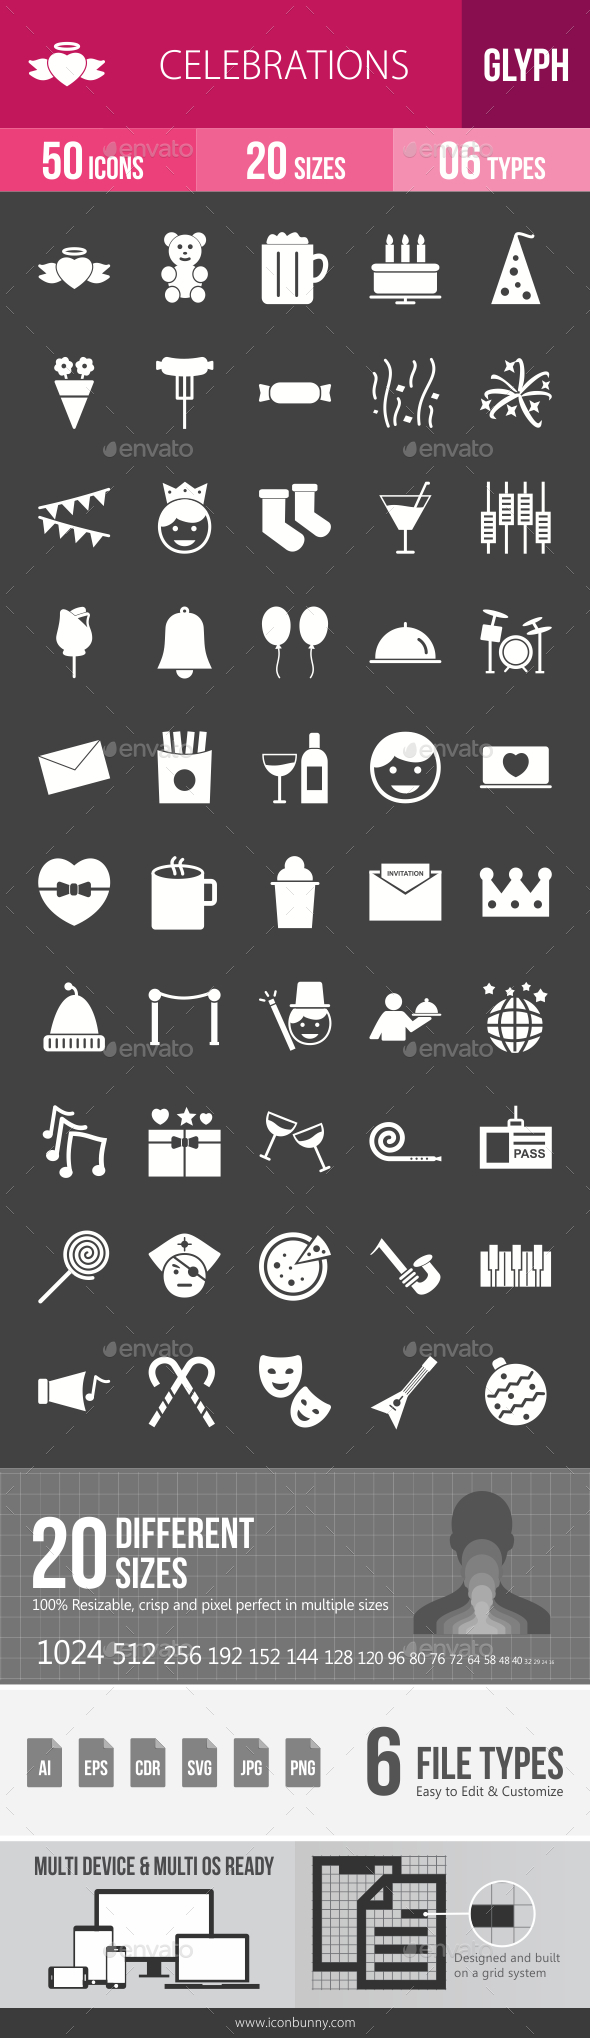 Celebrations Glyph Inverted Icons - Icons